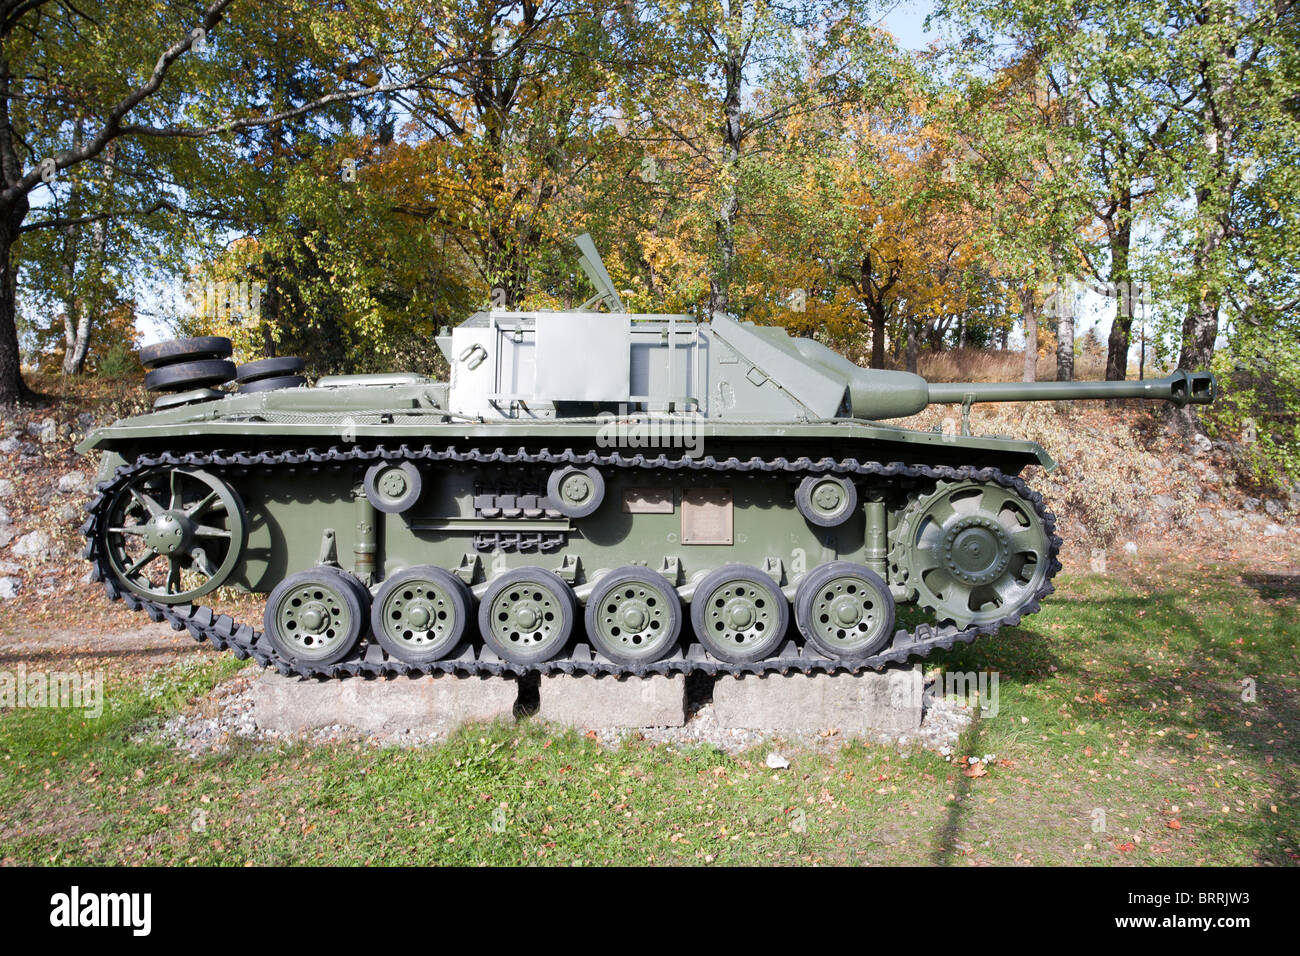 STU-40 tank on display in Lappeenranta Finland - Stock Image